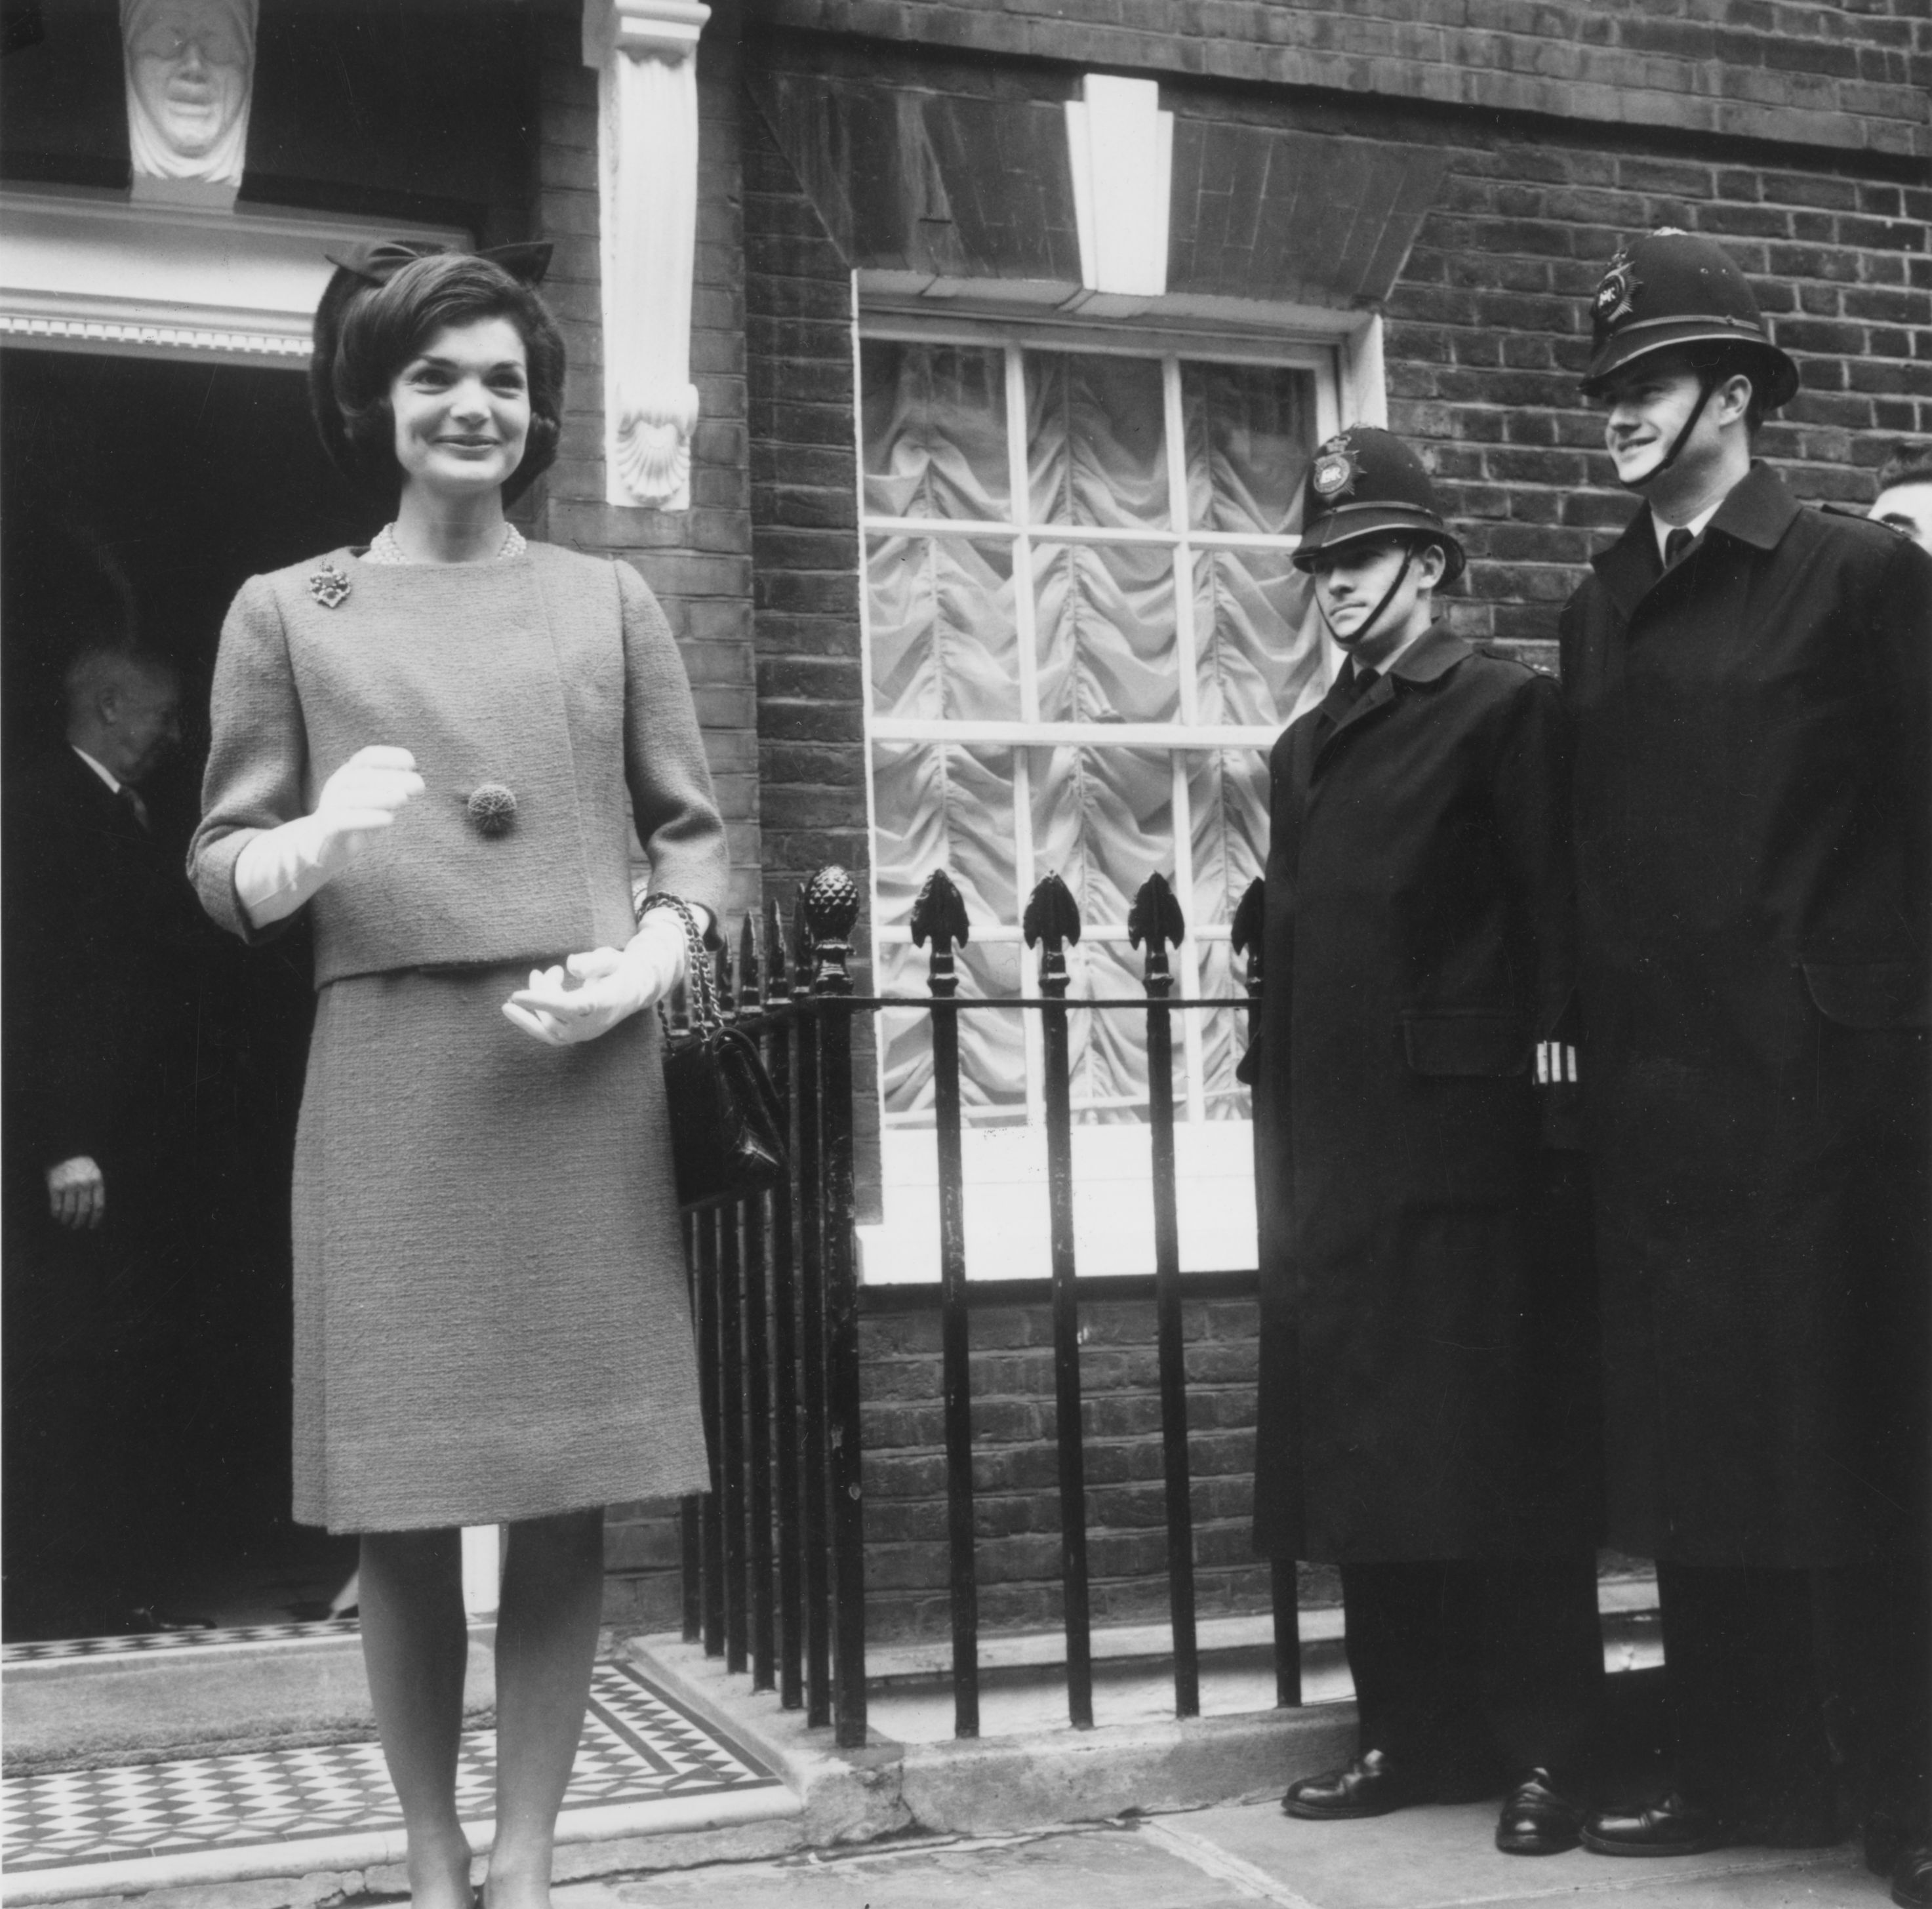 Jackie Kennedy's Iconic 1960s Style